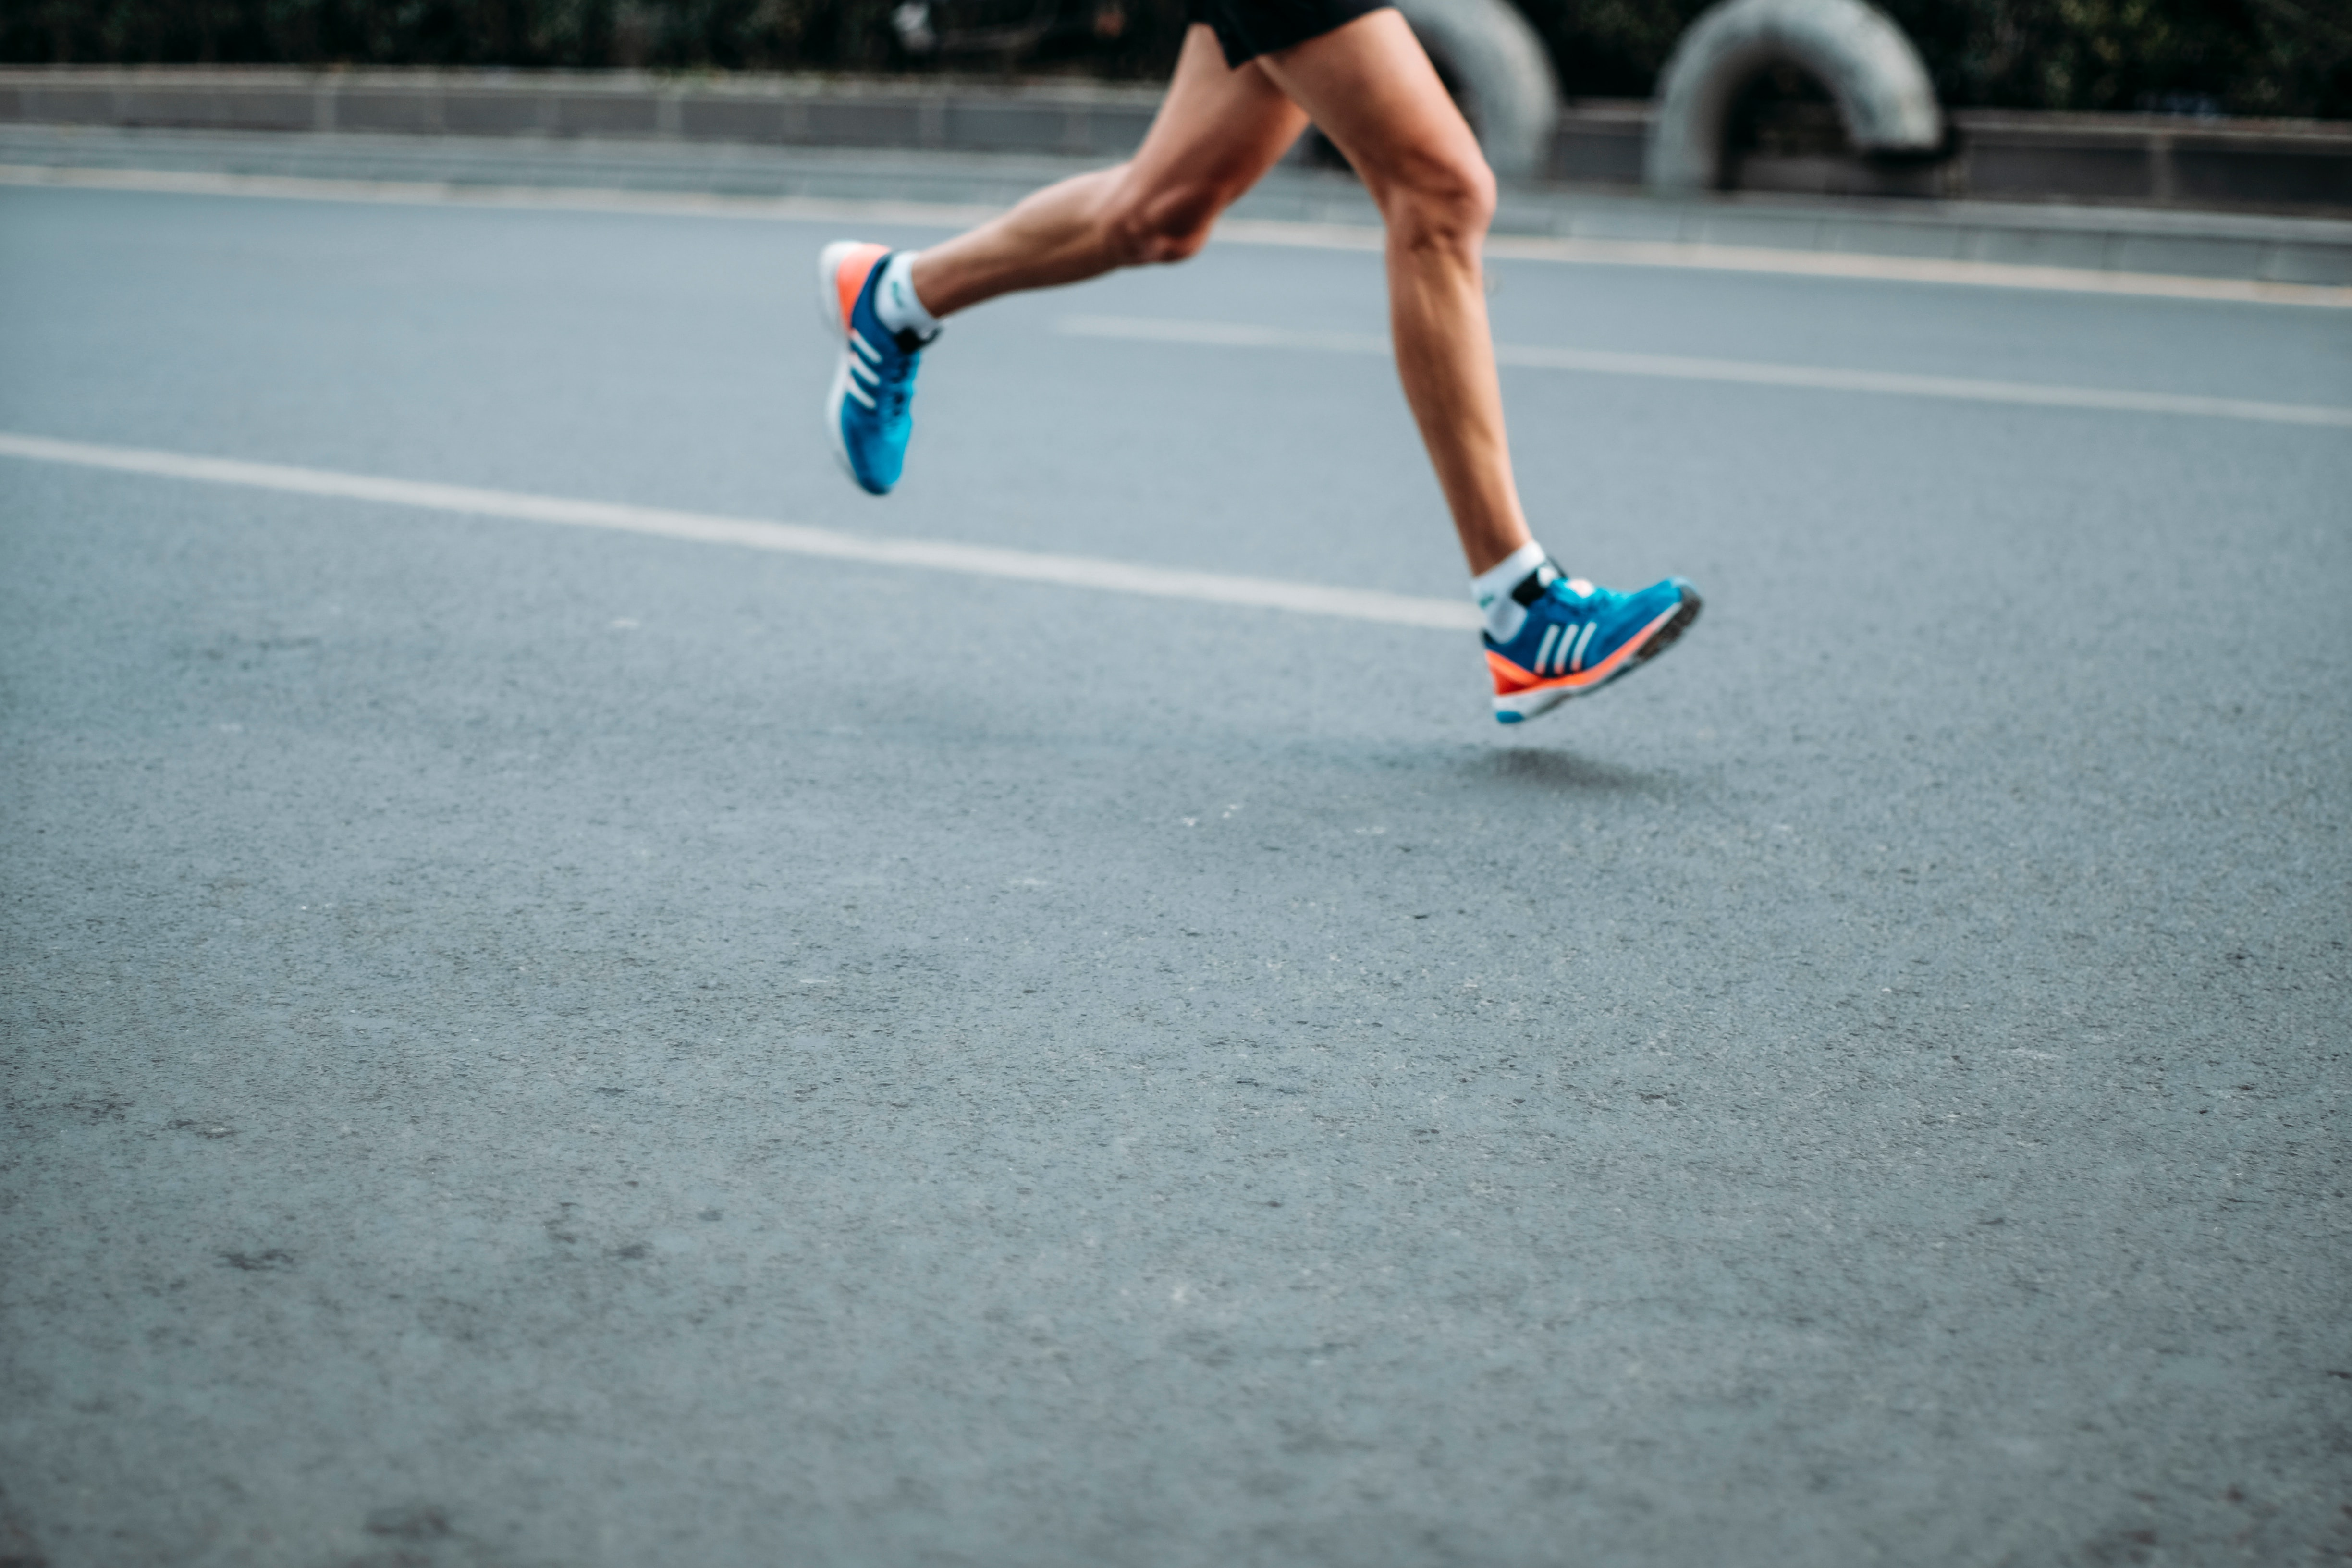 A person's legs wearing a pair of blue-and-white Adidas running shoes running